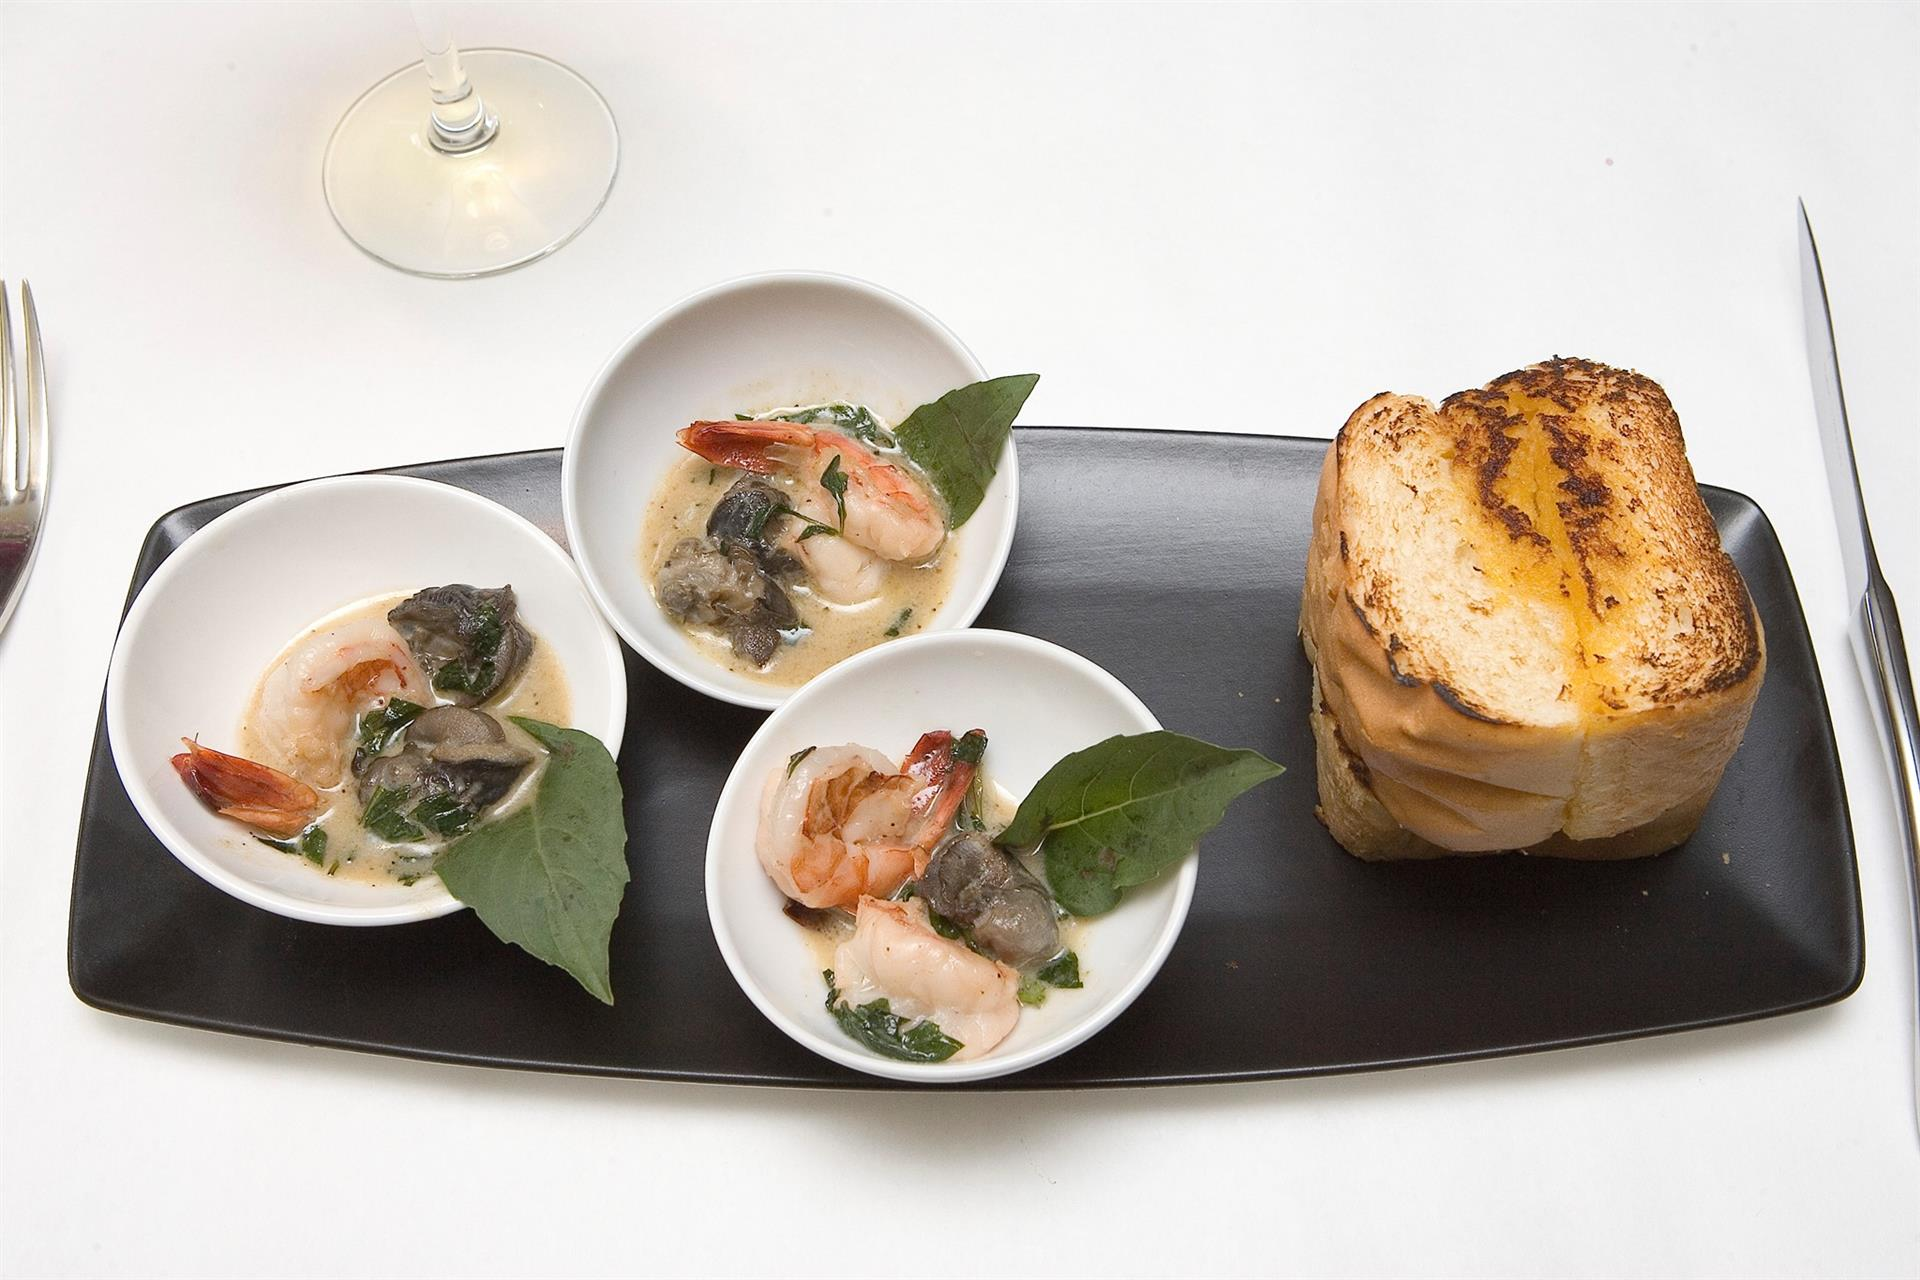 Plate of diffterent soups with side of bread